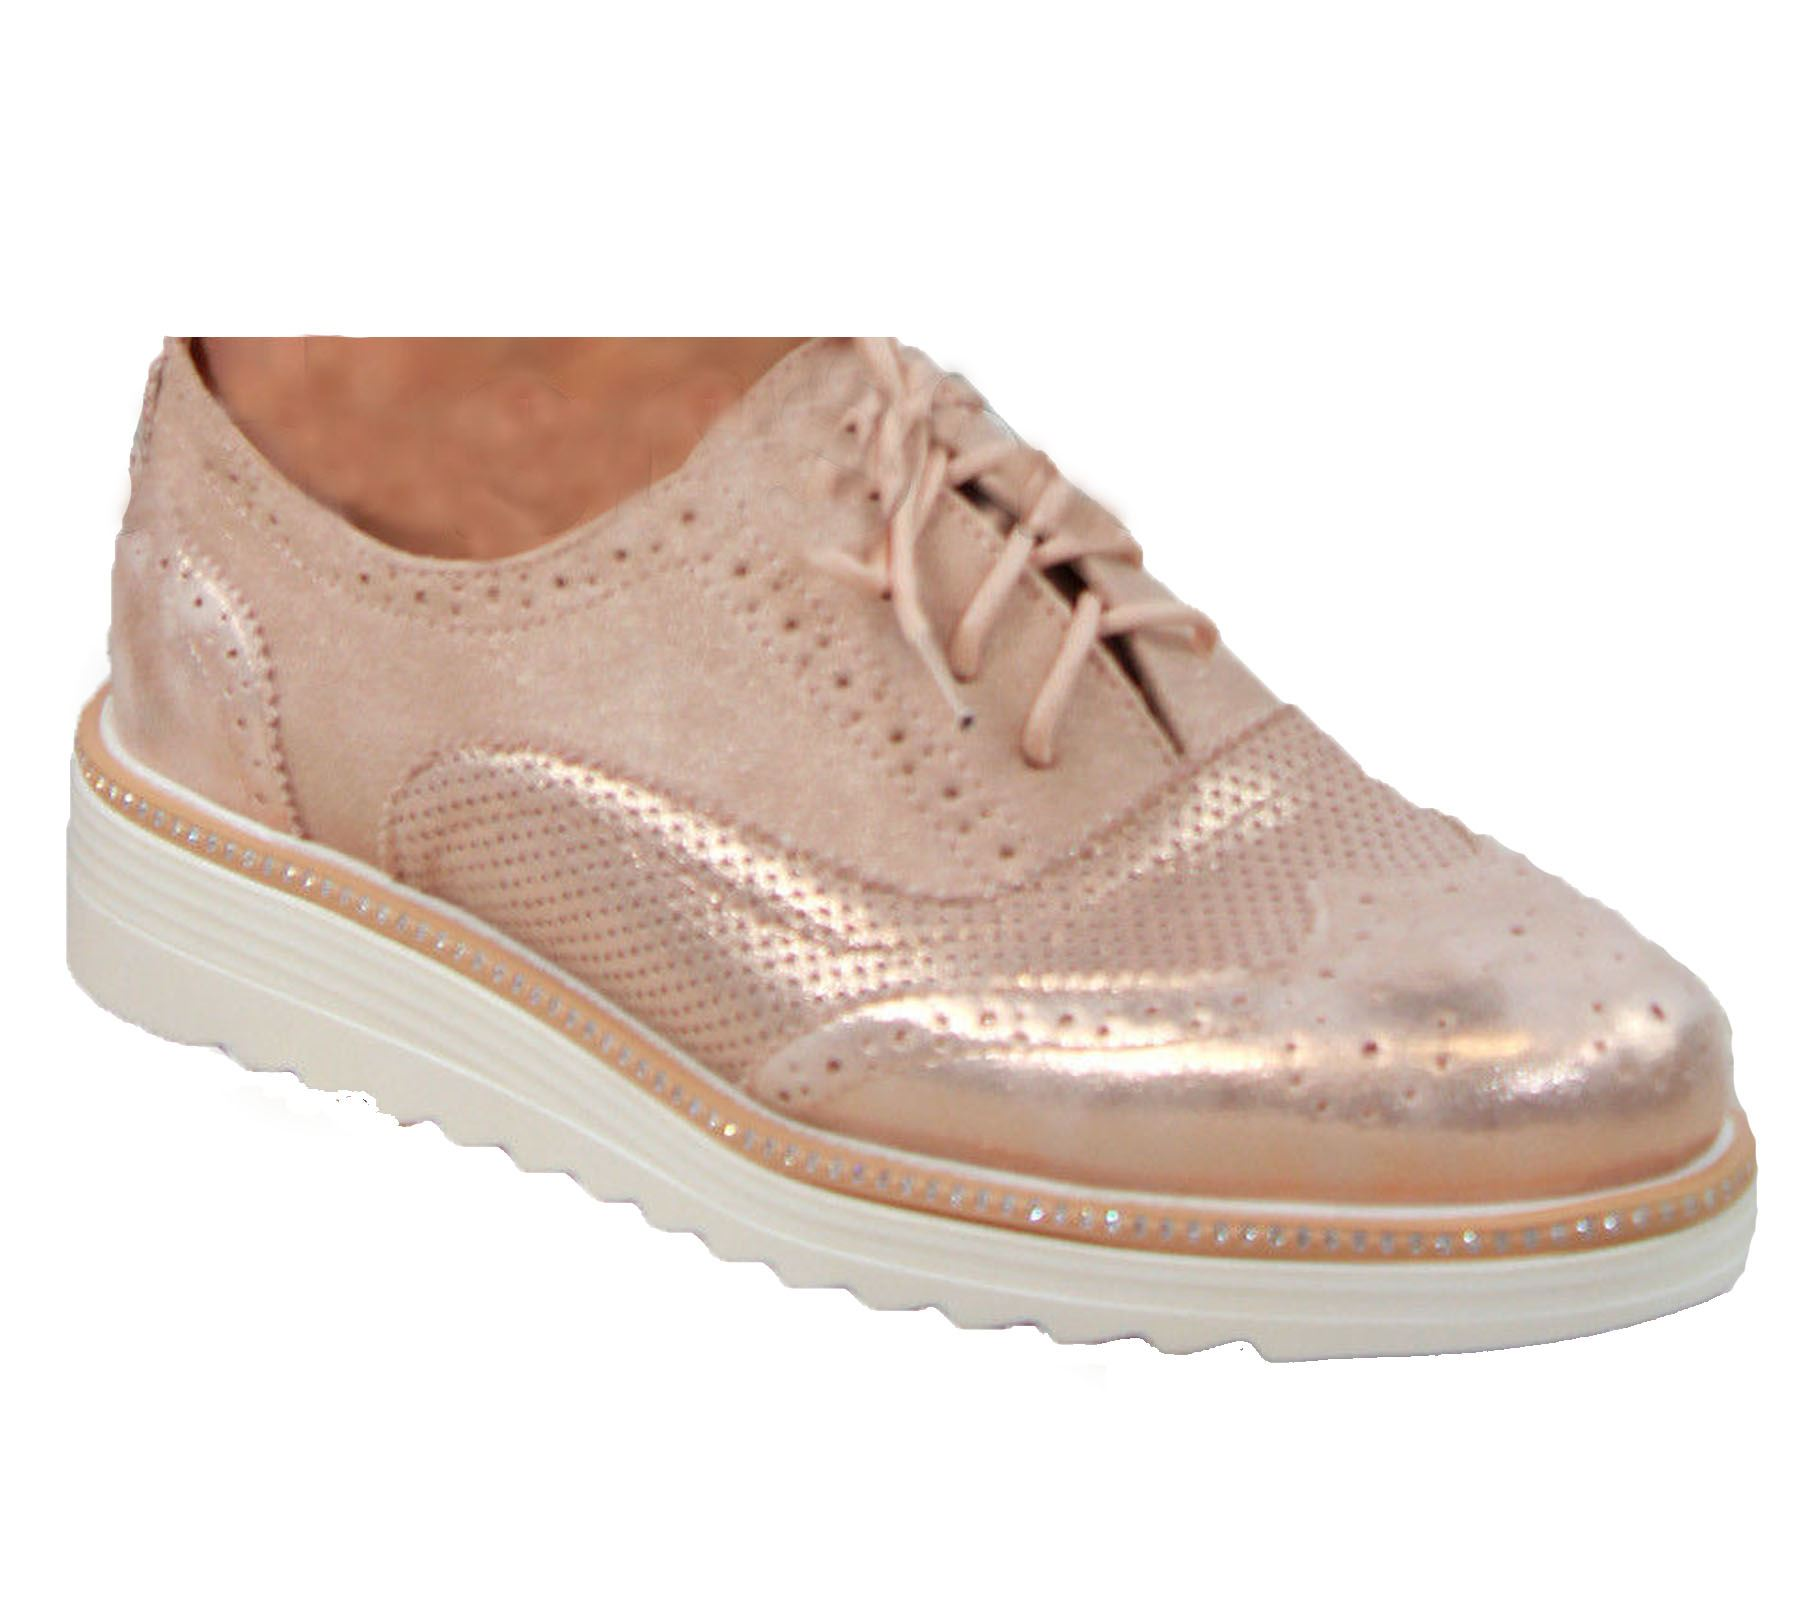 Ladies-Brogue-Lace-Up-Shoes-Womens-Oxford-Smart-Office-Loafers-Shoes miniatura 36